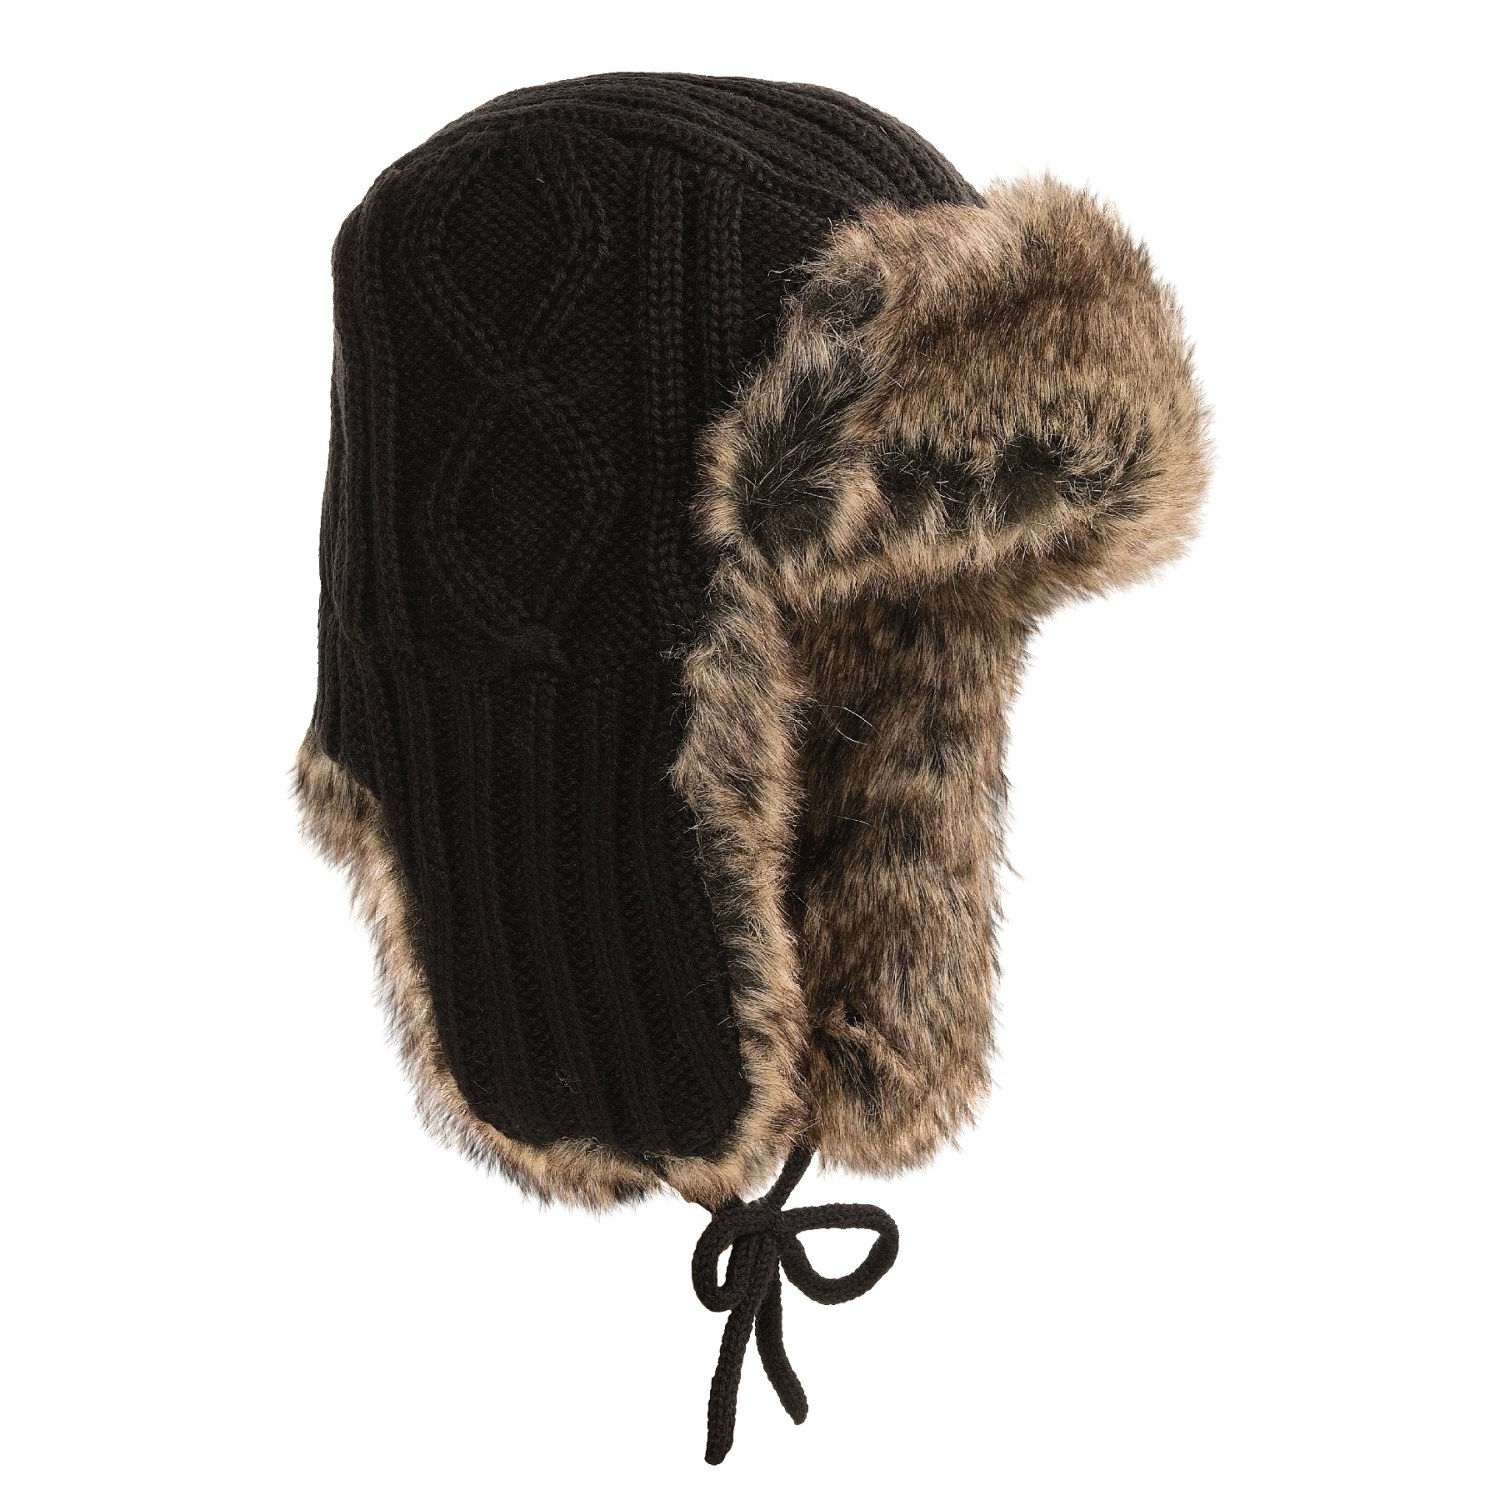 Auclair Cable-Knit Ear Flap Hat (For Men and Women) 2903P - Save 53%